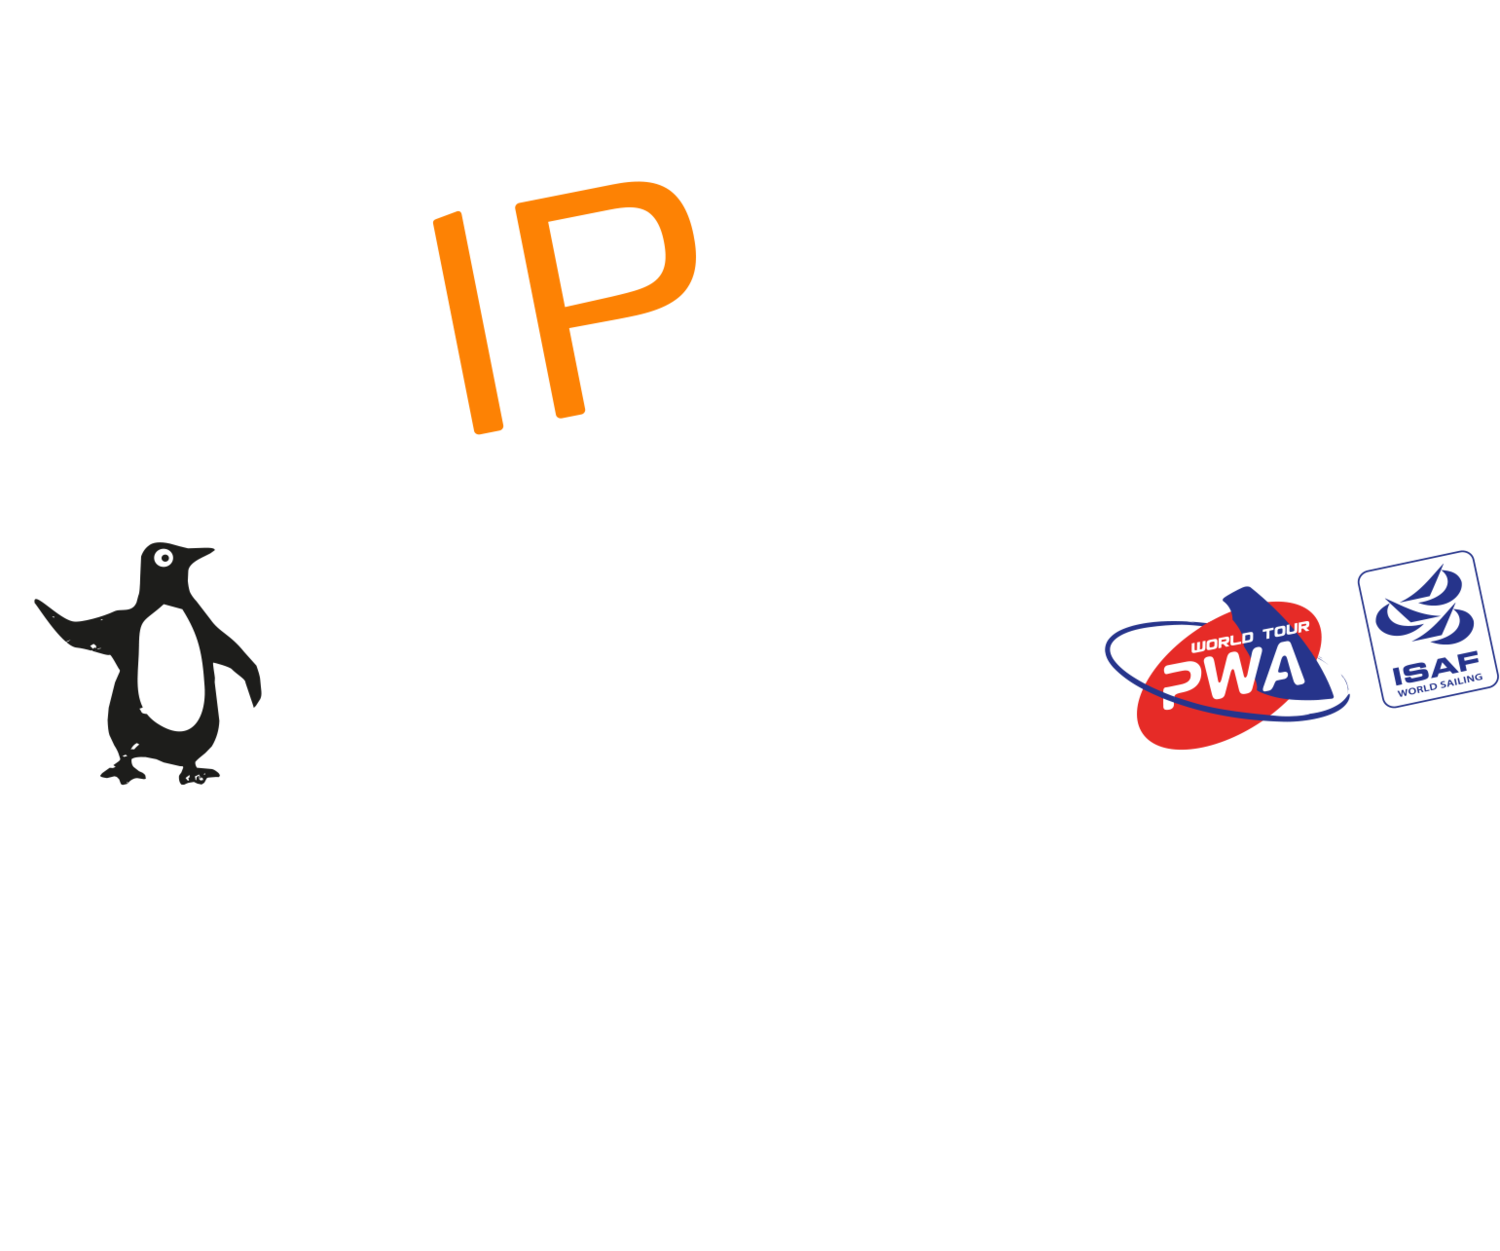 Cold Hawaii PWA World Cup